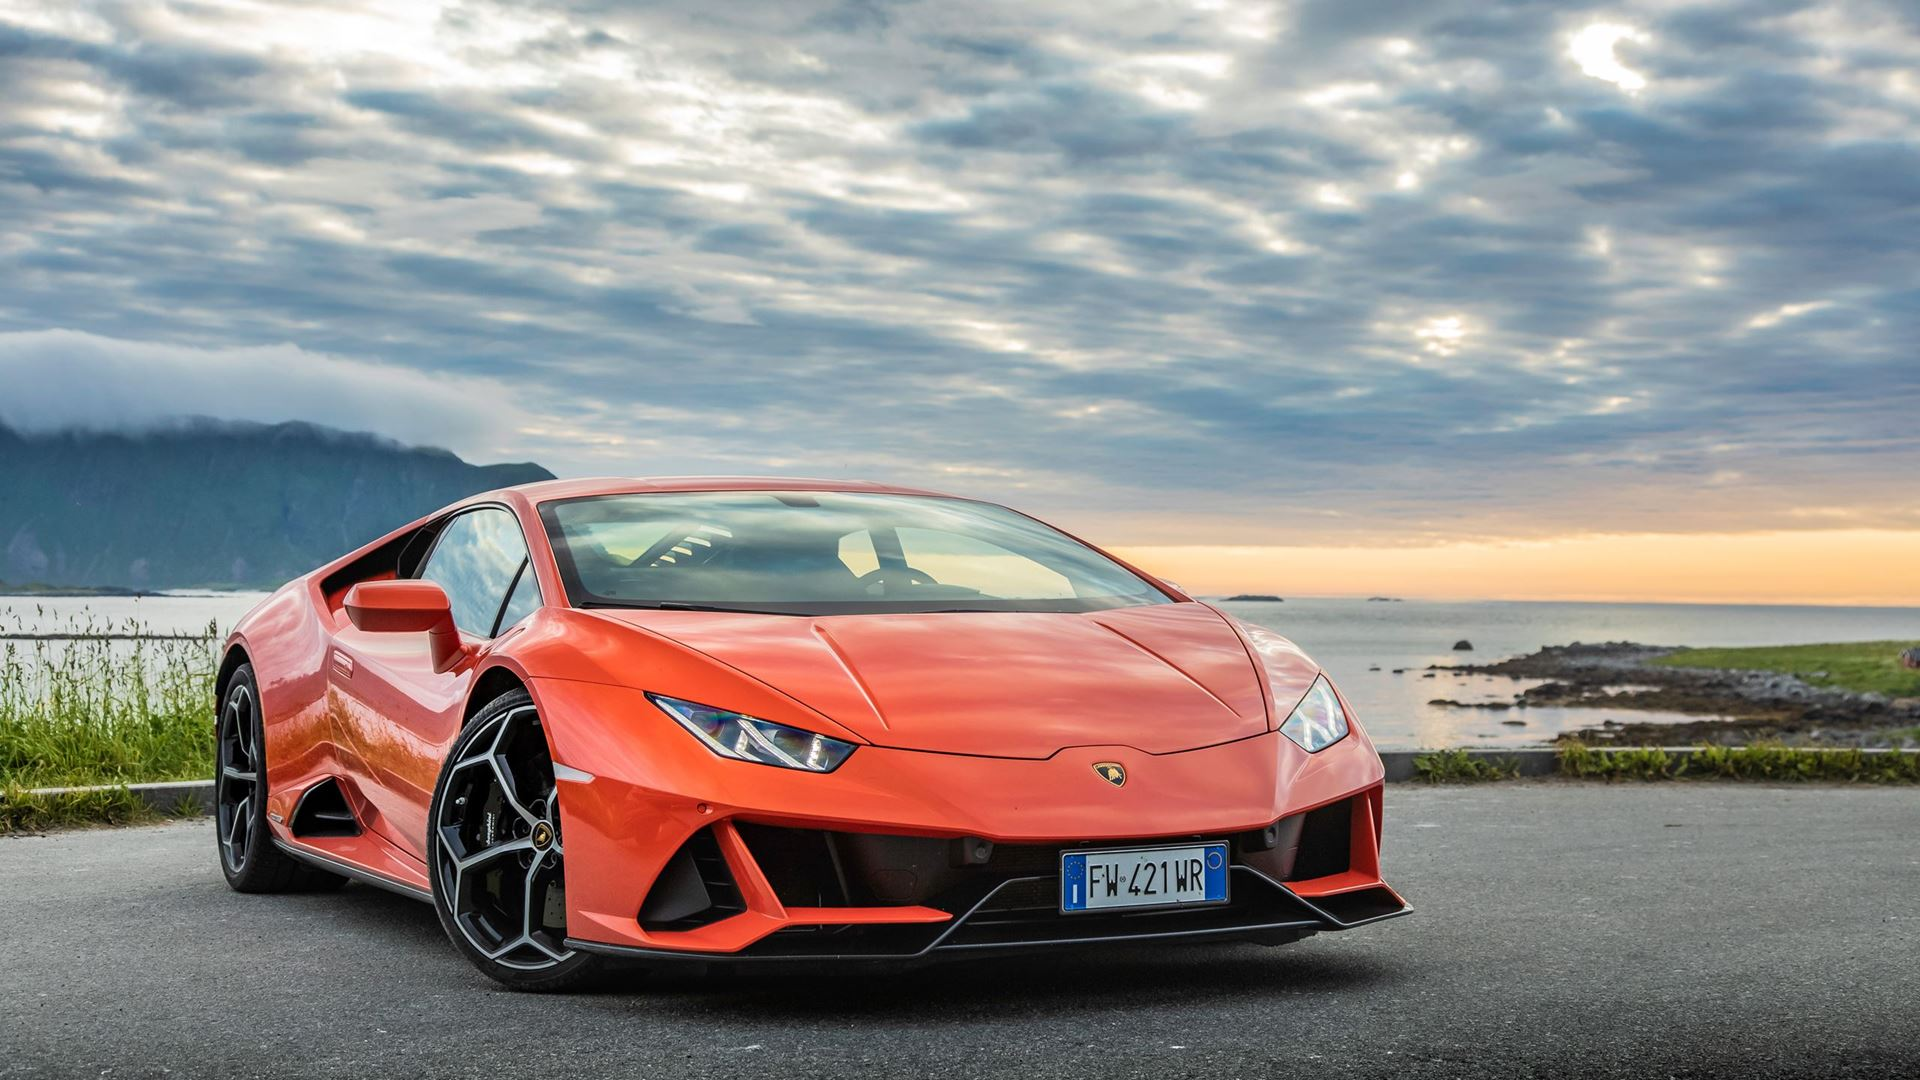 New suite of connected services for the Lamborghini Huracán EVO range: Automobili Lamborghini is first to incorporate comprehensive in-car control by Amazon Alexa - Image 8